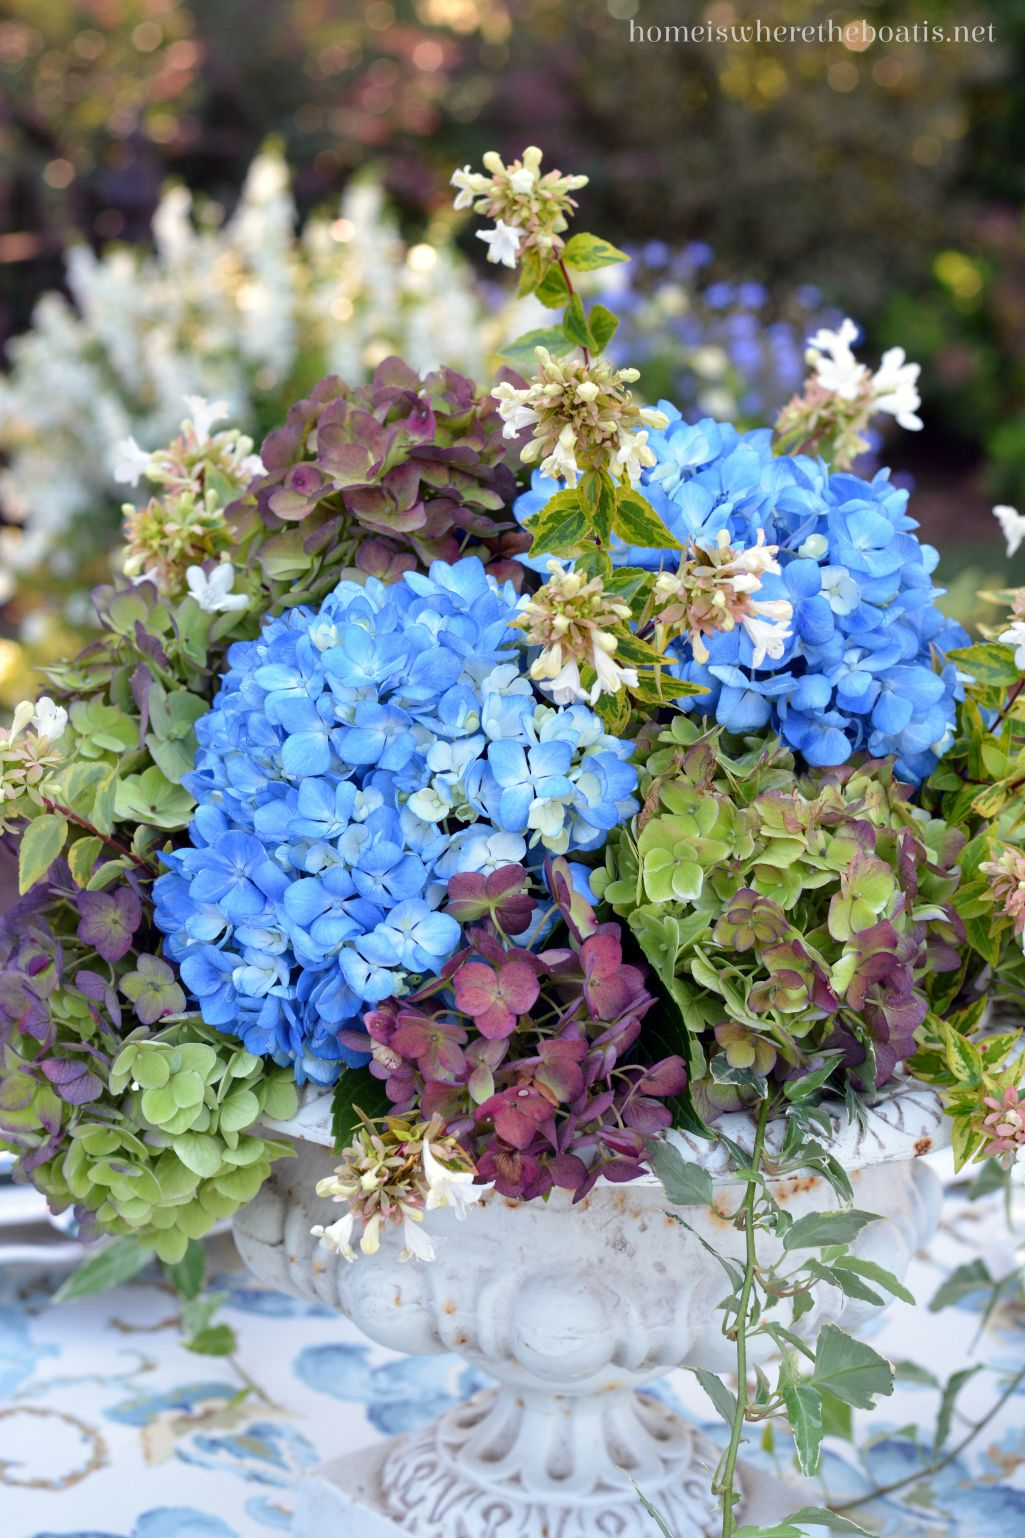 At the table summers last hurrah with hydrangeas and